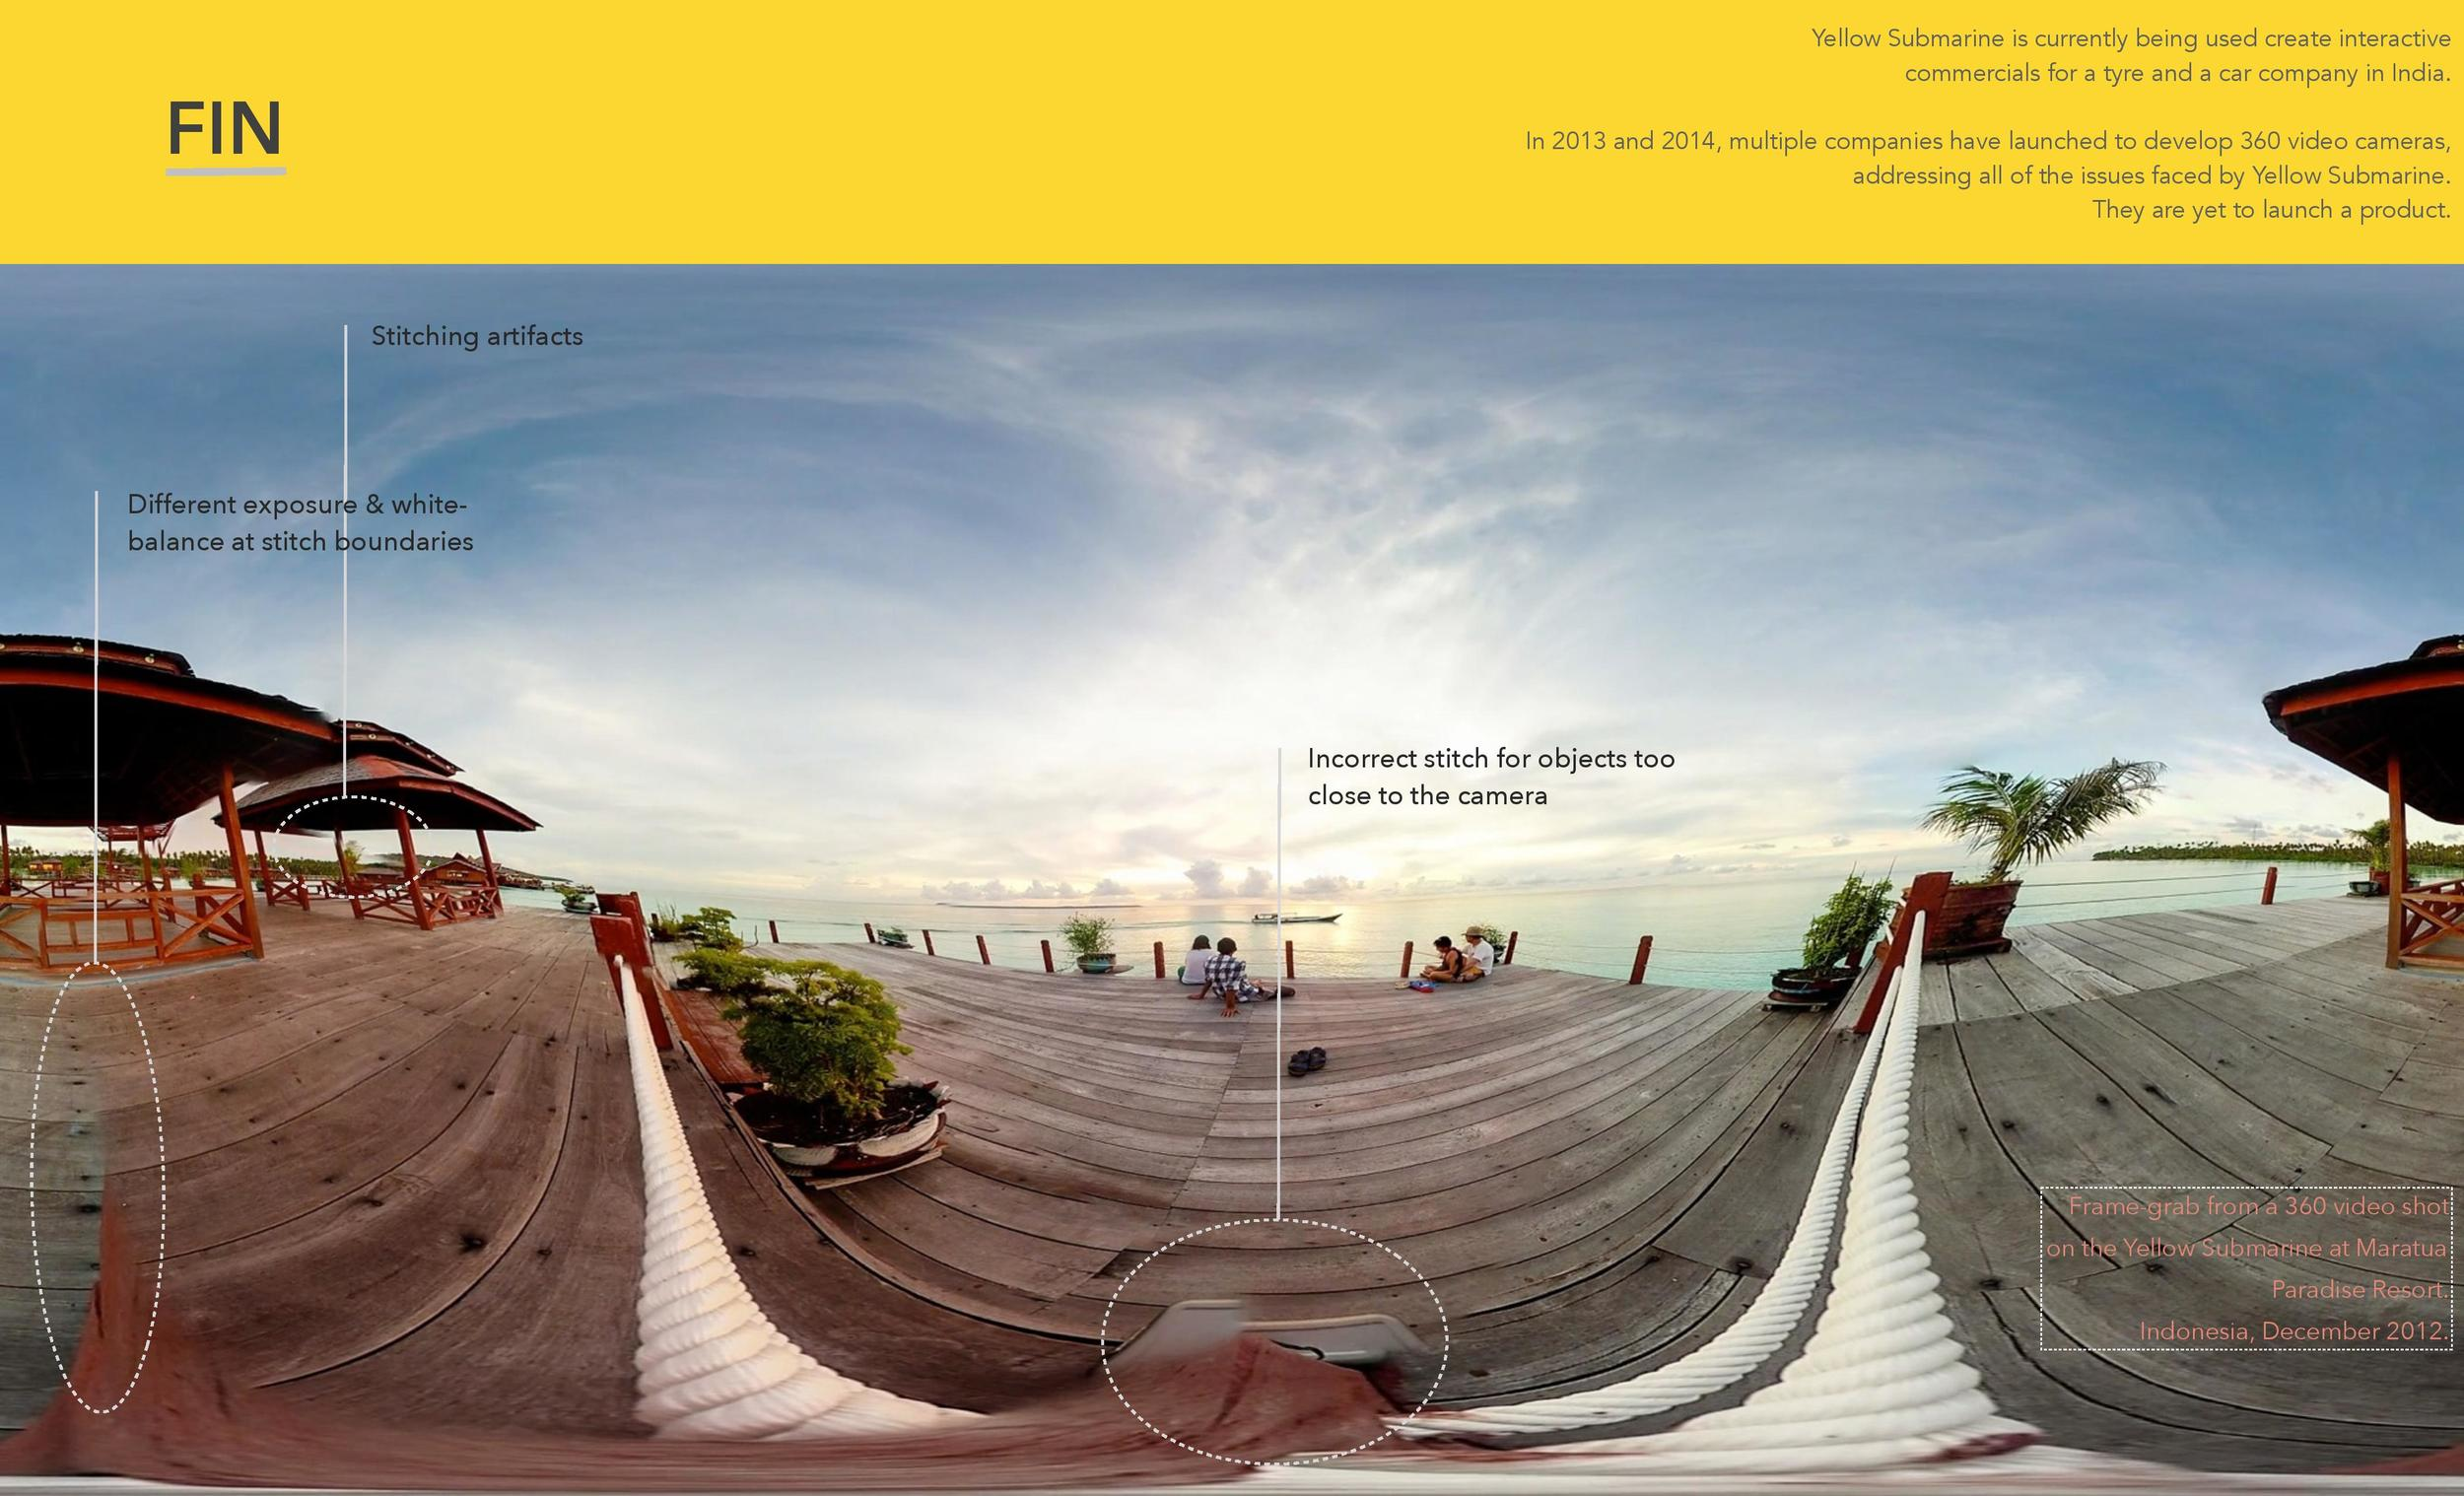 YellowSubmarine-CaseStudy-better-page-009.jpg